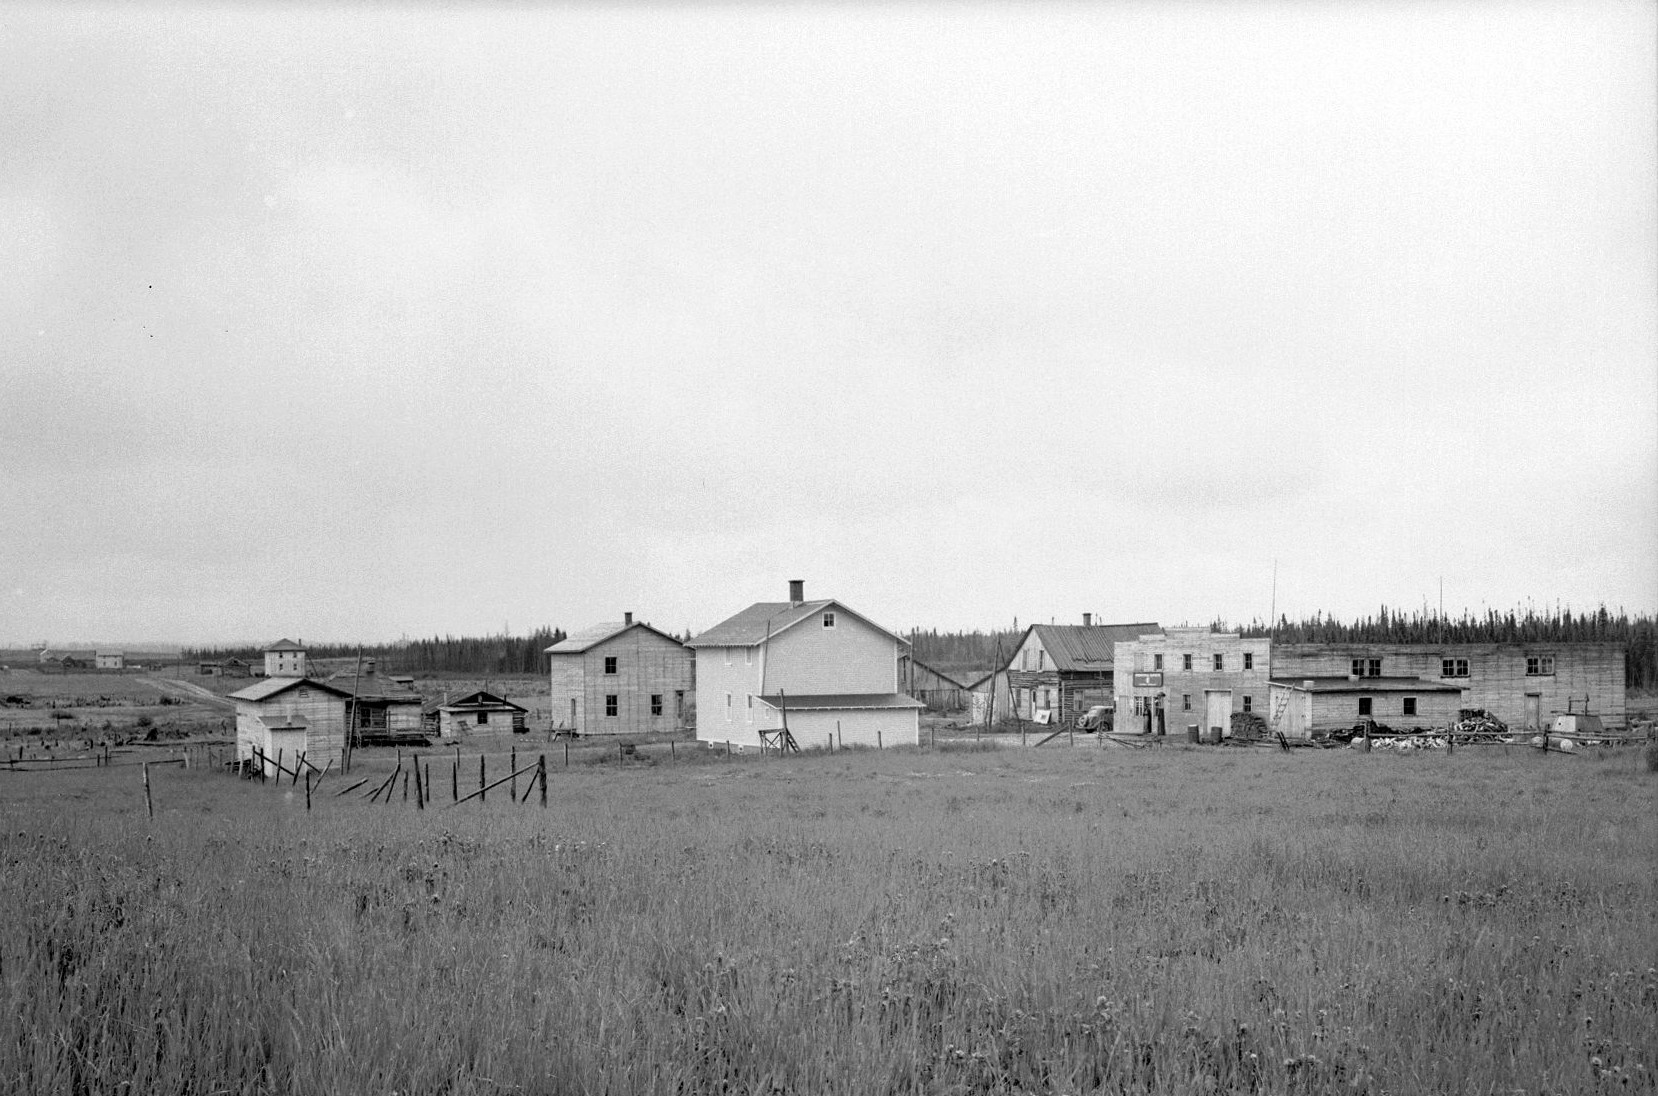 Black and white photograph of a hamlet of about ten buildings, made of logs and planks, surrounded by a field. In the background, a forest.